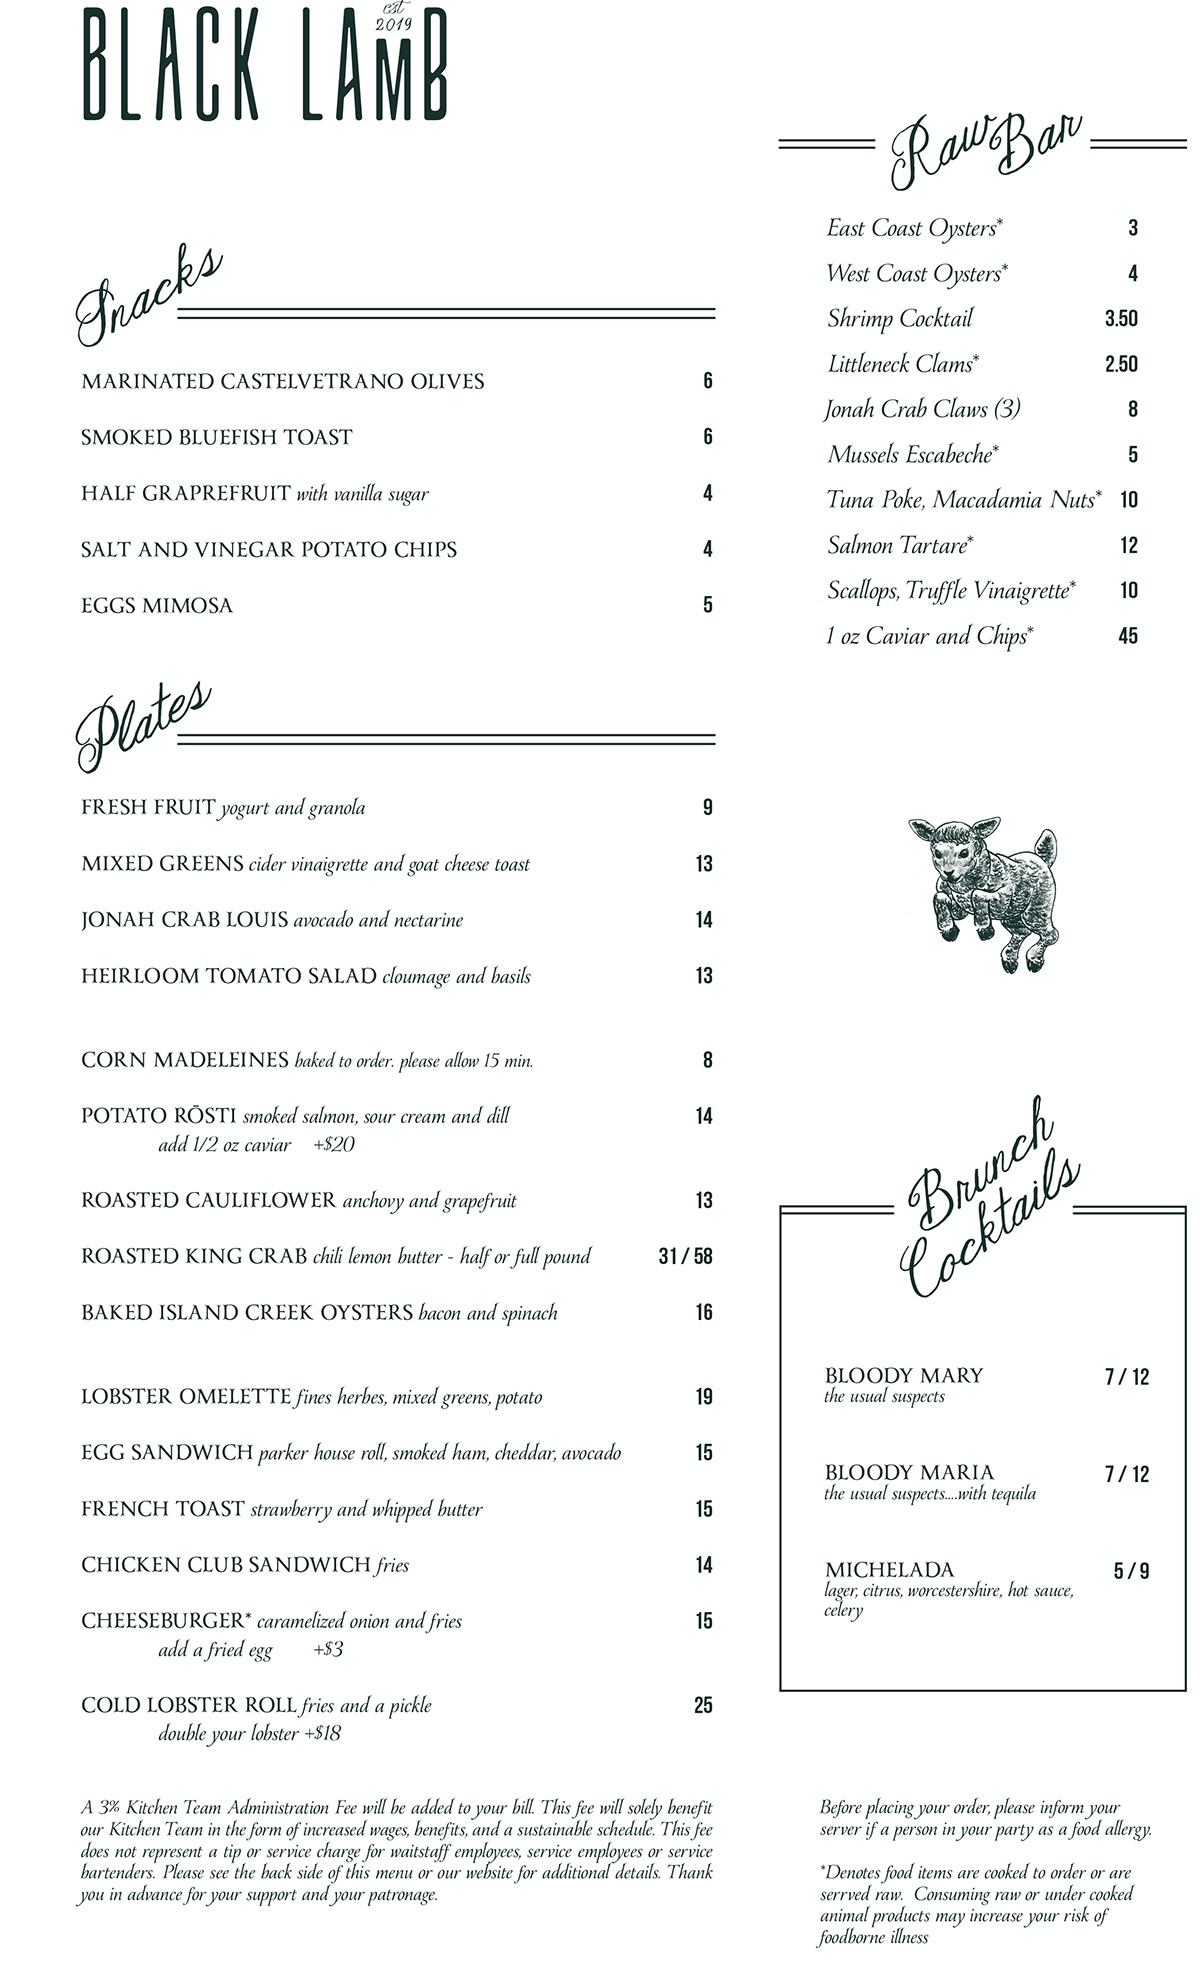 Check Out the New Weekend Brunch Menu at Black Lamb in Boston